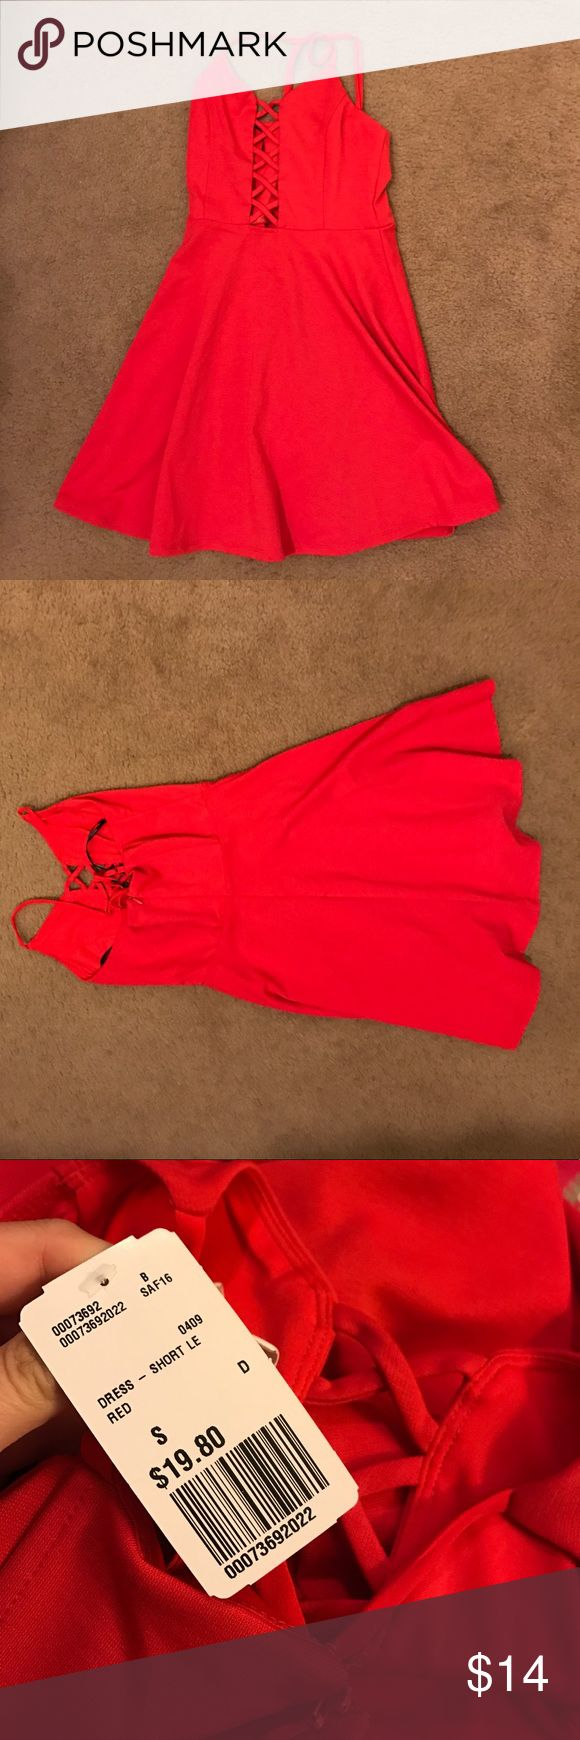 Red dress Red going out dress. Super cute! Never worn. Brand new! Forever 21 Dresses